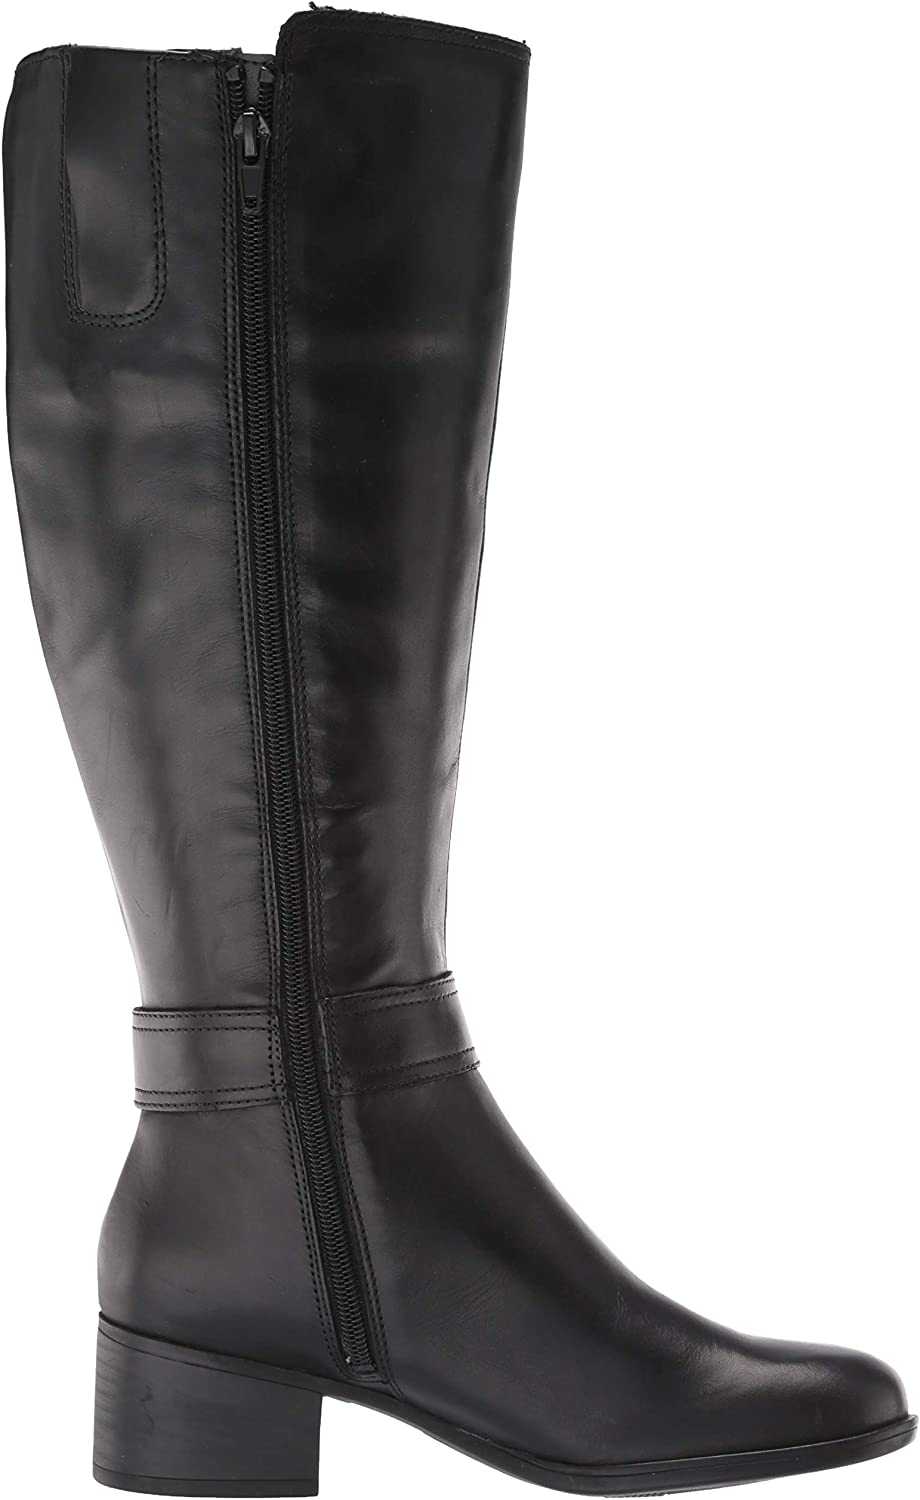 Naturalizer Women's Kelso Knee High Boot Black Wc